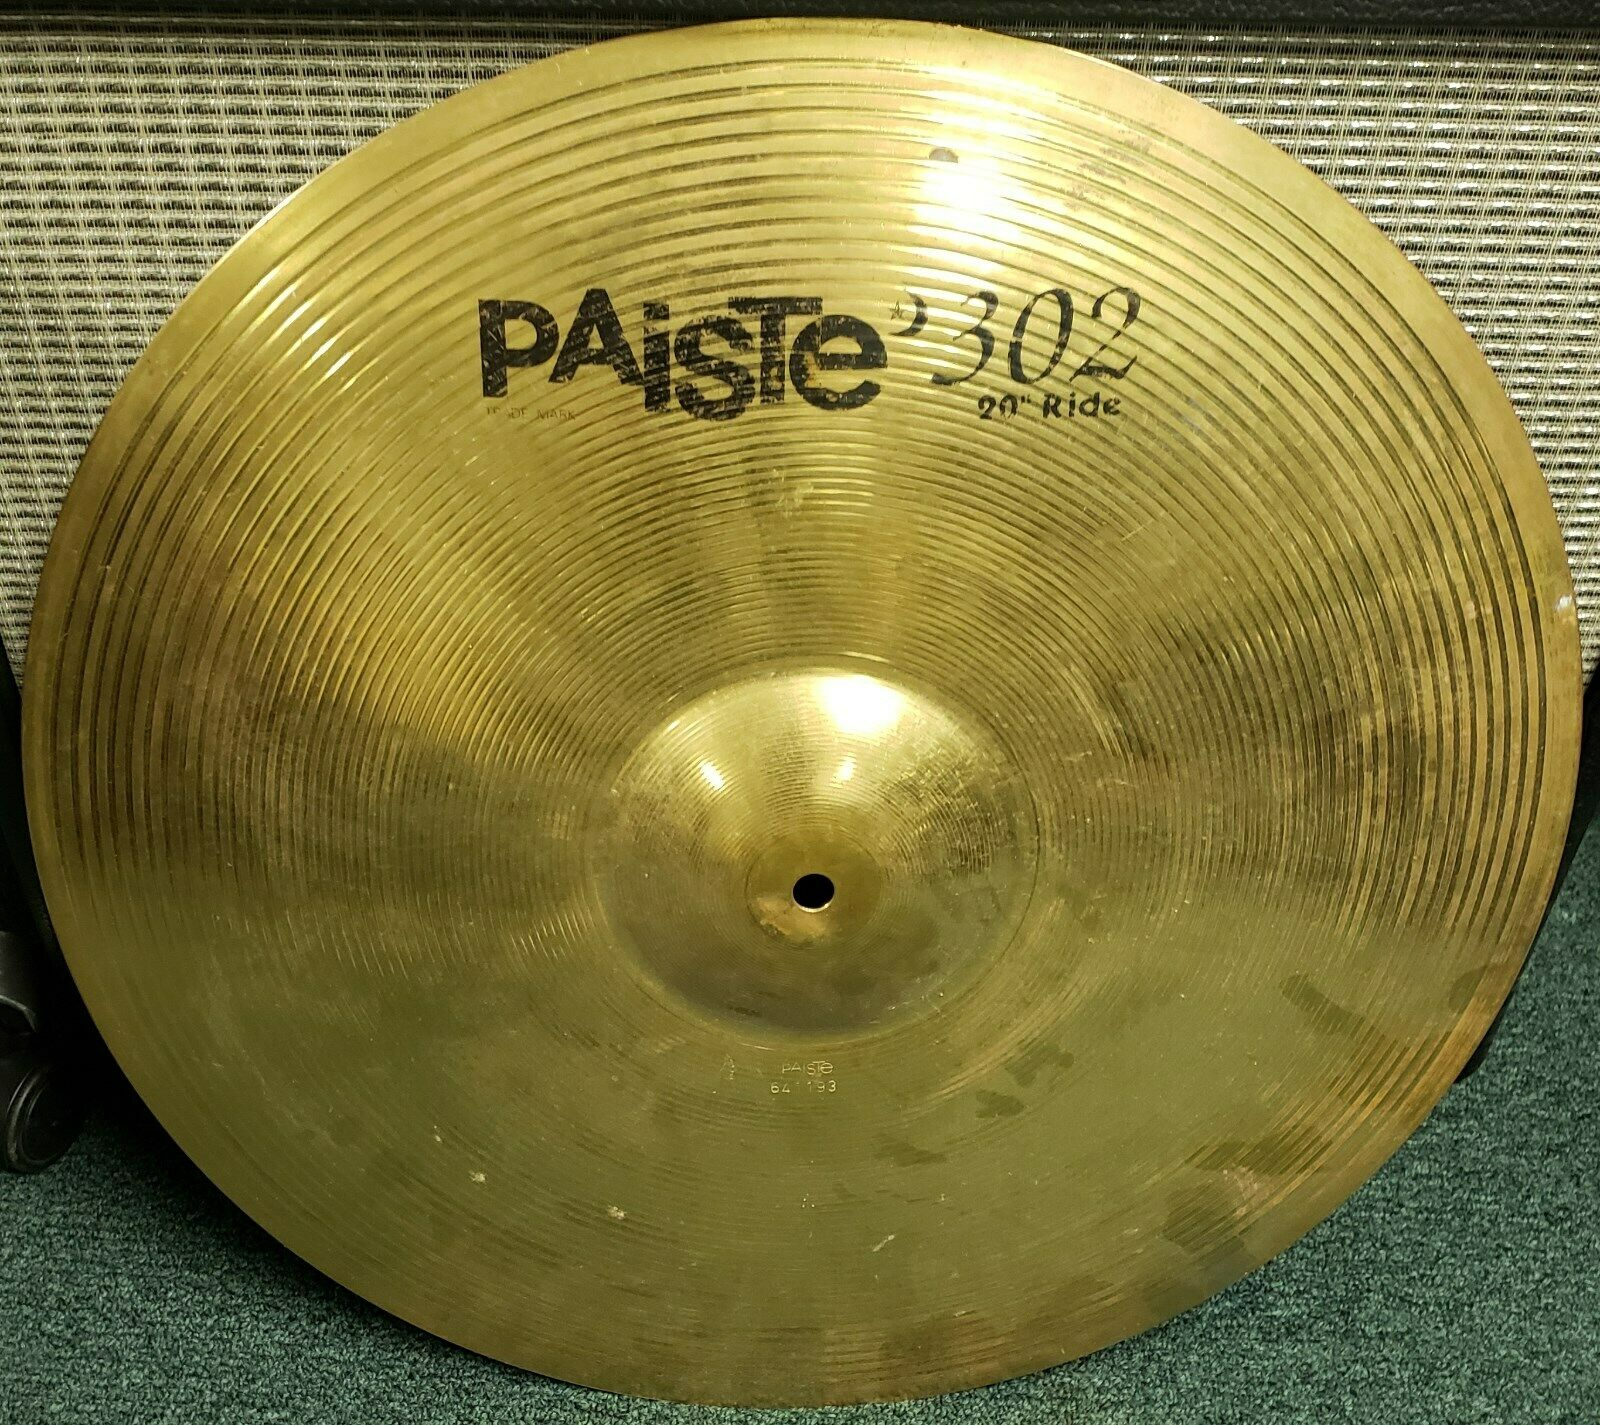 Paiste 302 Ride Cymbal Made in Germany